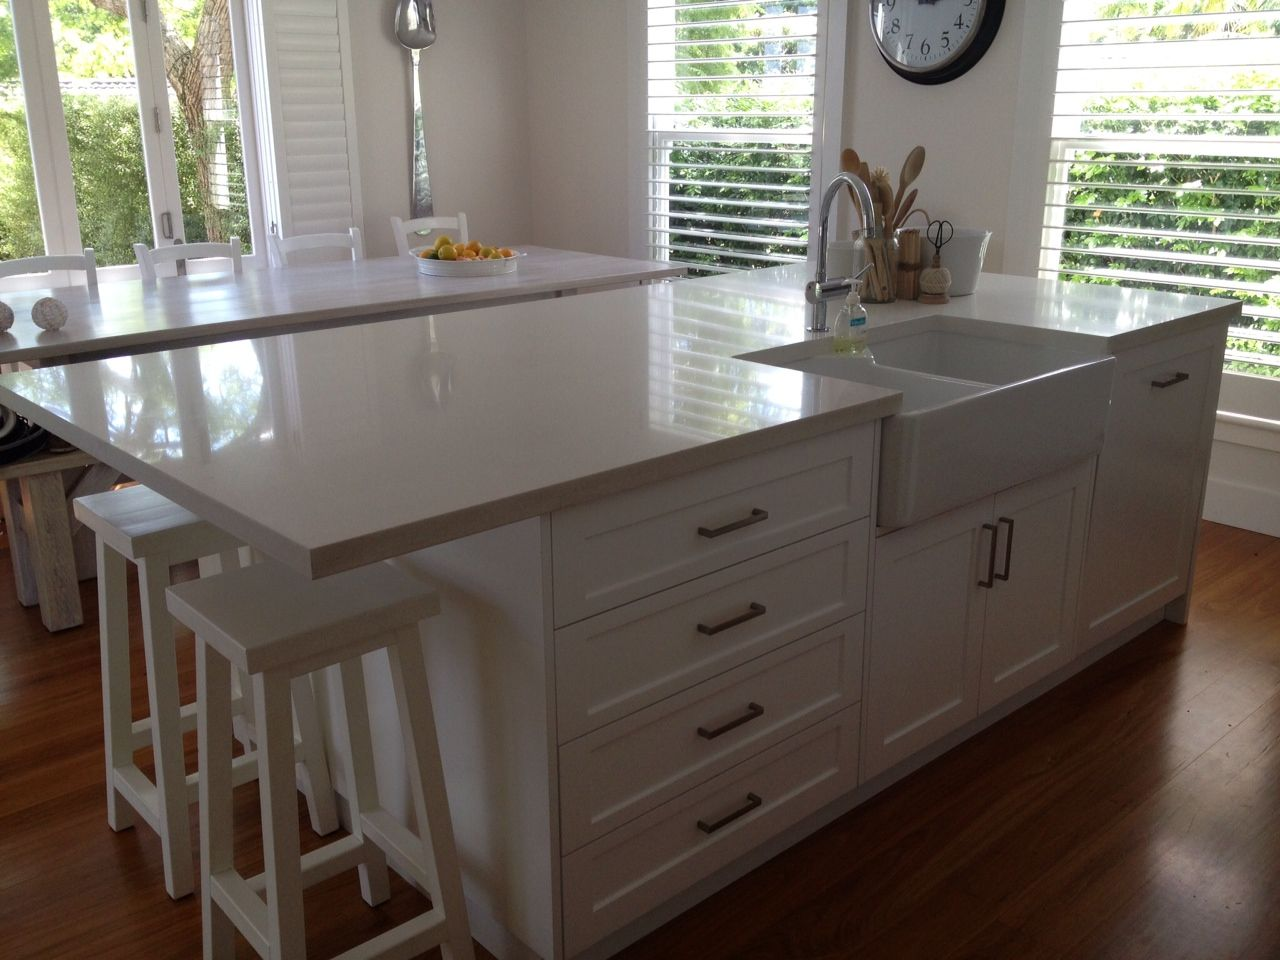 Kitchen Island With Seating Kitchen Island With Sink And Seating Butler Sink Kitchen